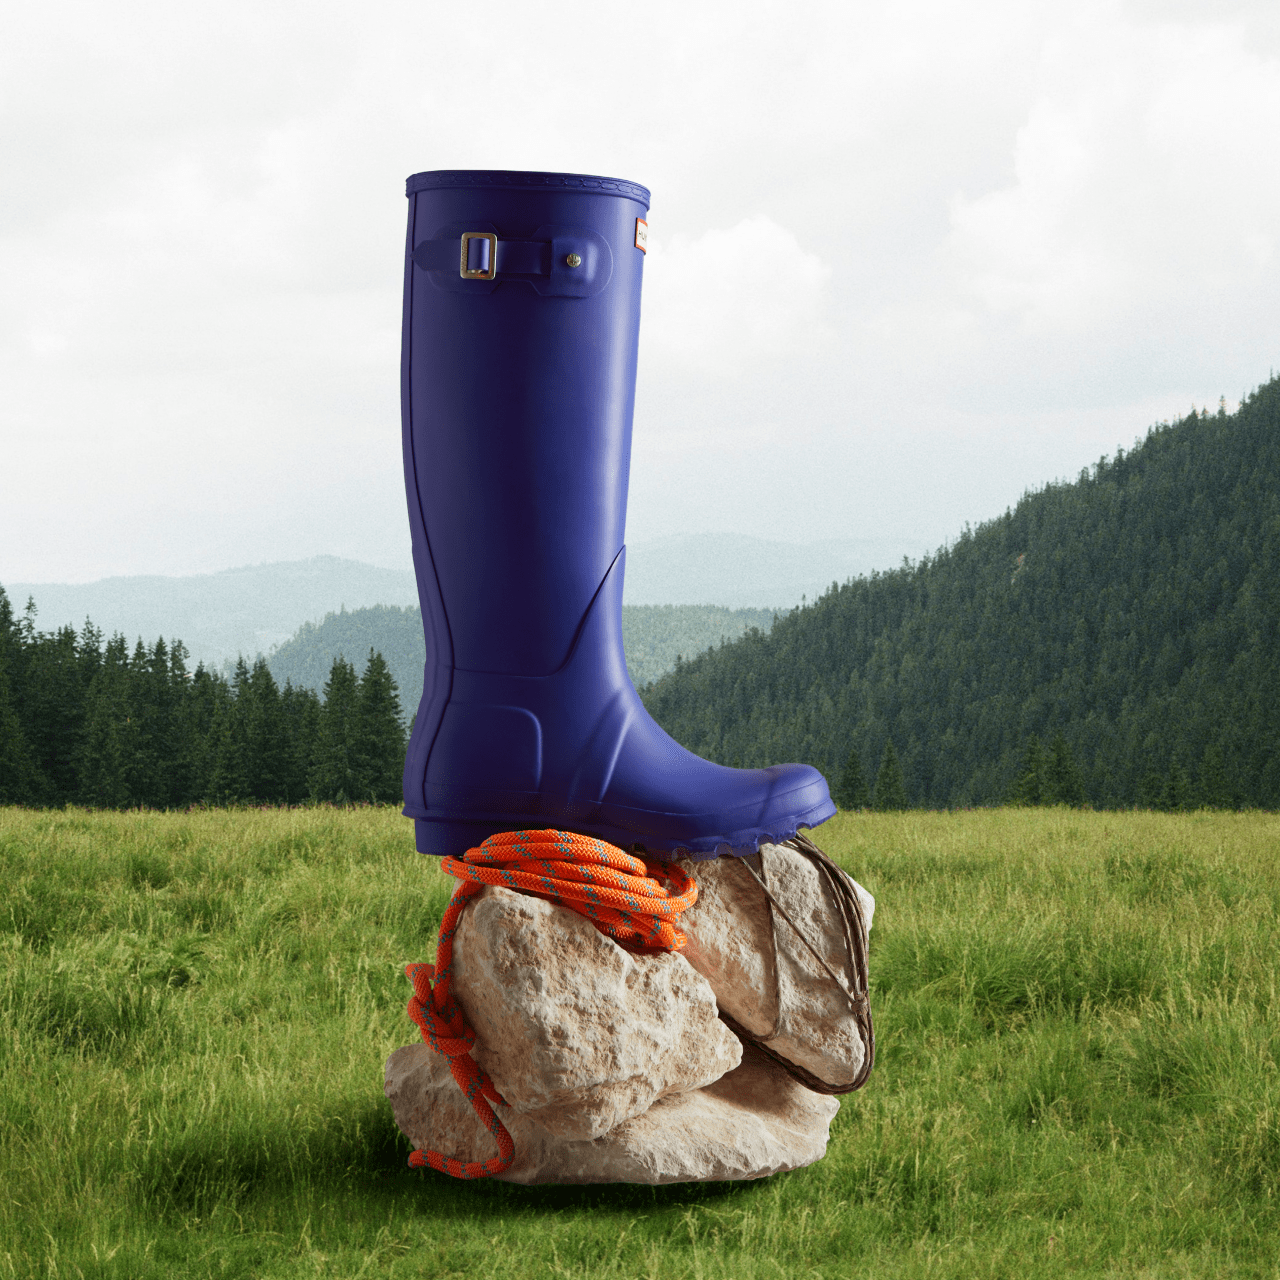 Blue original tall wellington boot sitting on a rock with trees and grass in the background.